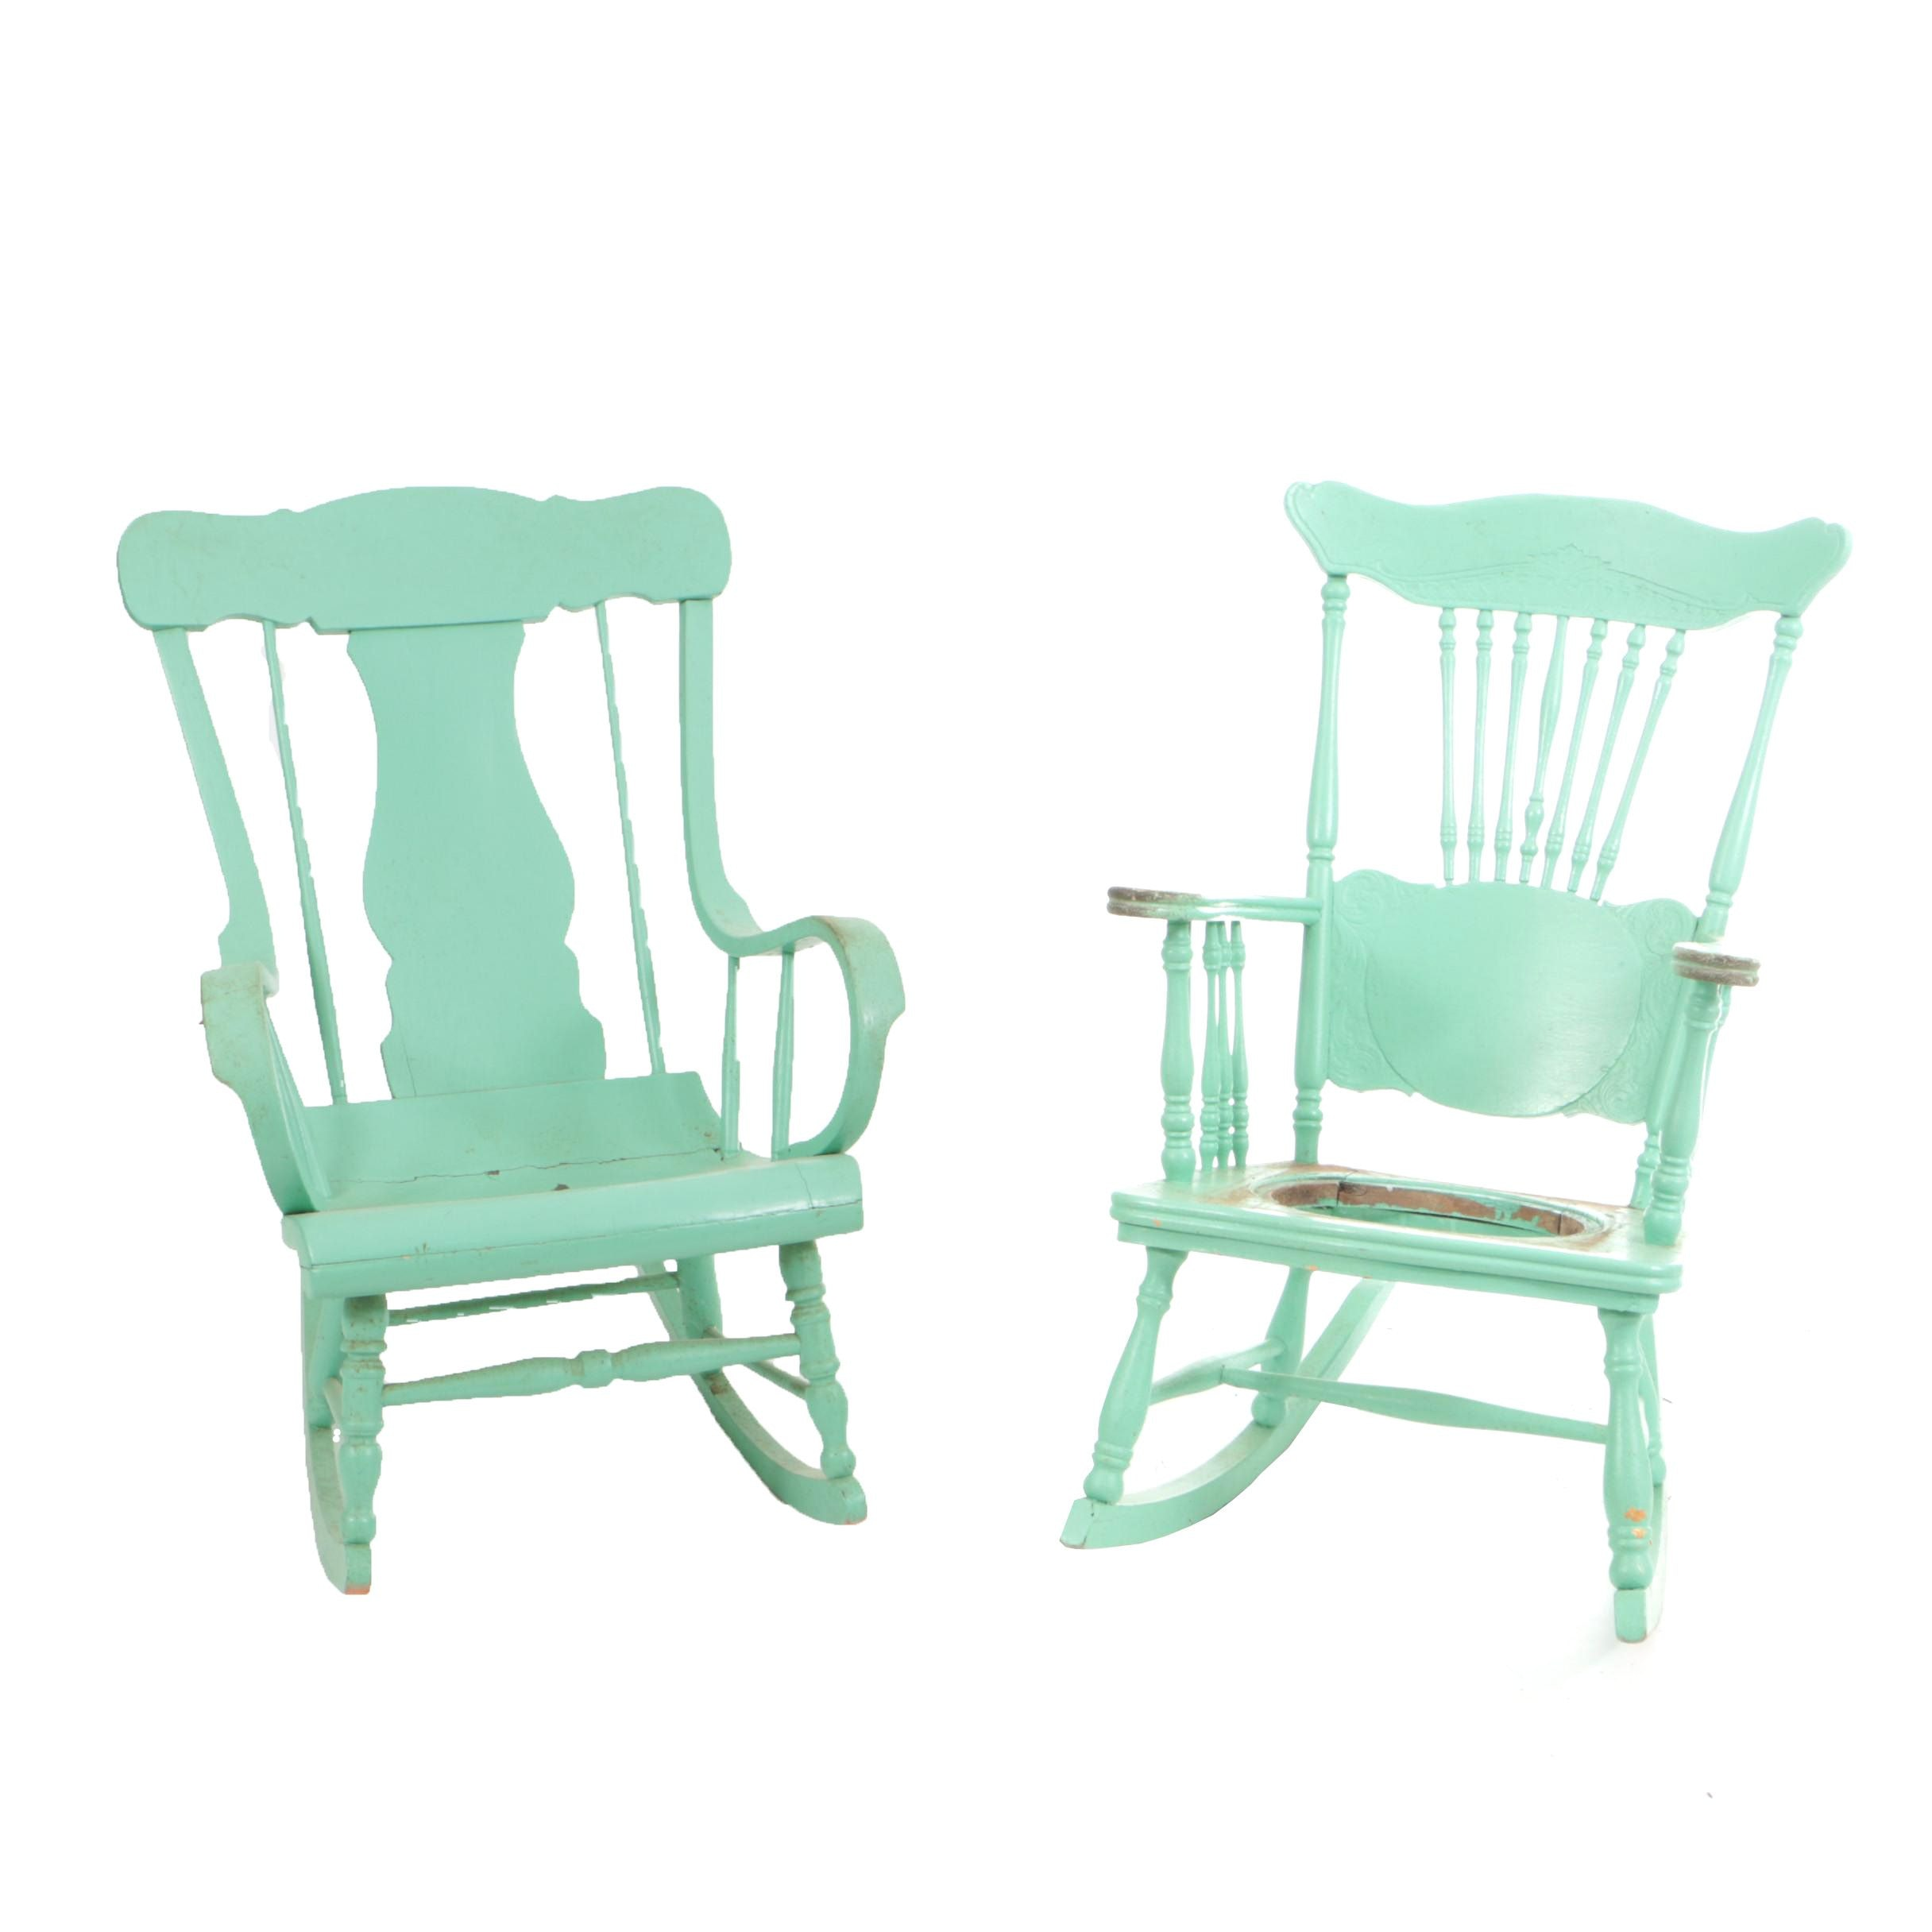 Antique Late Victorian Rocking Chairs in Later, Green Paint